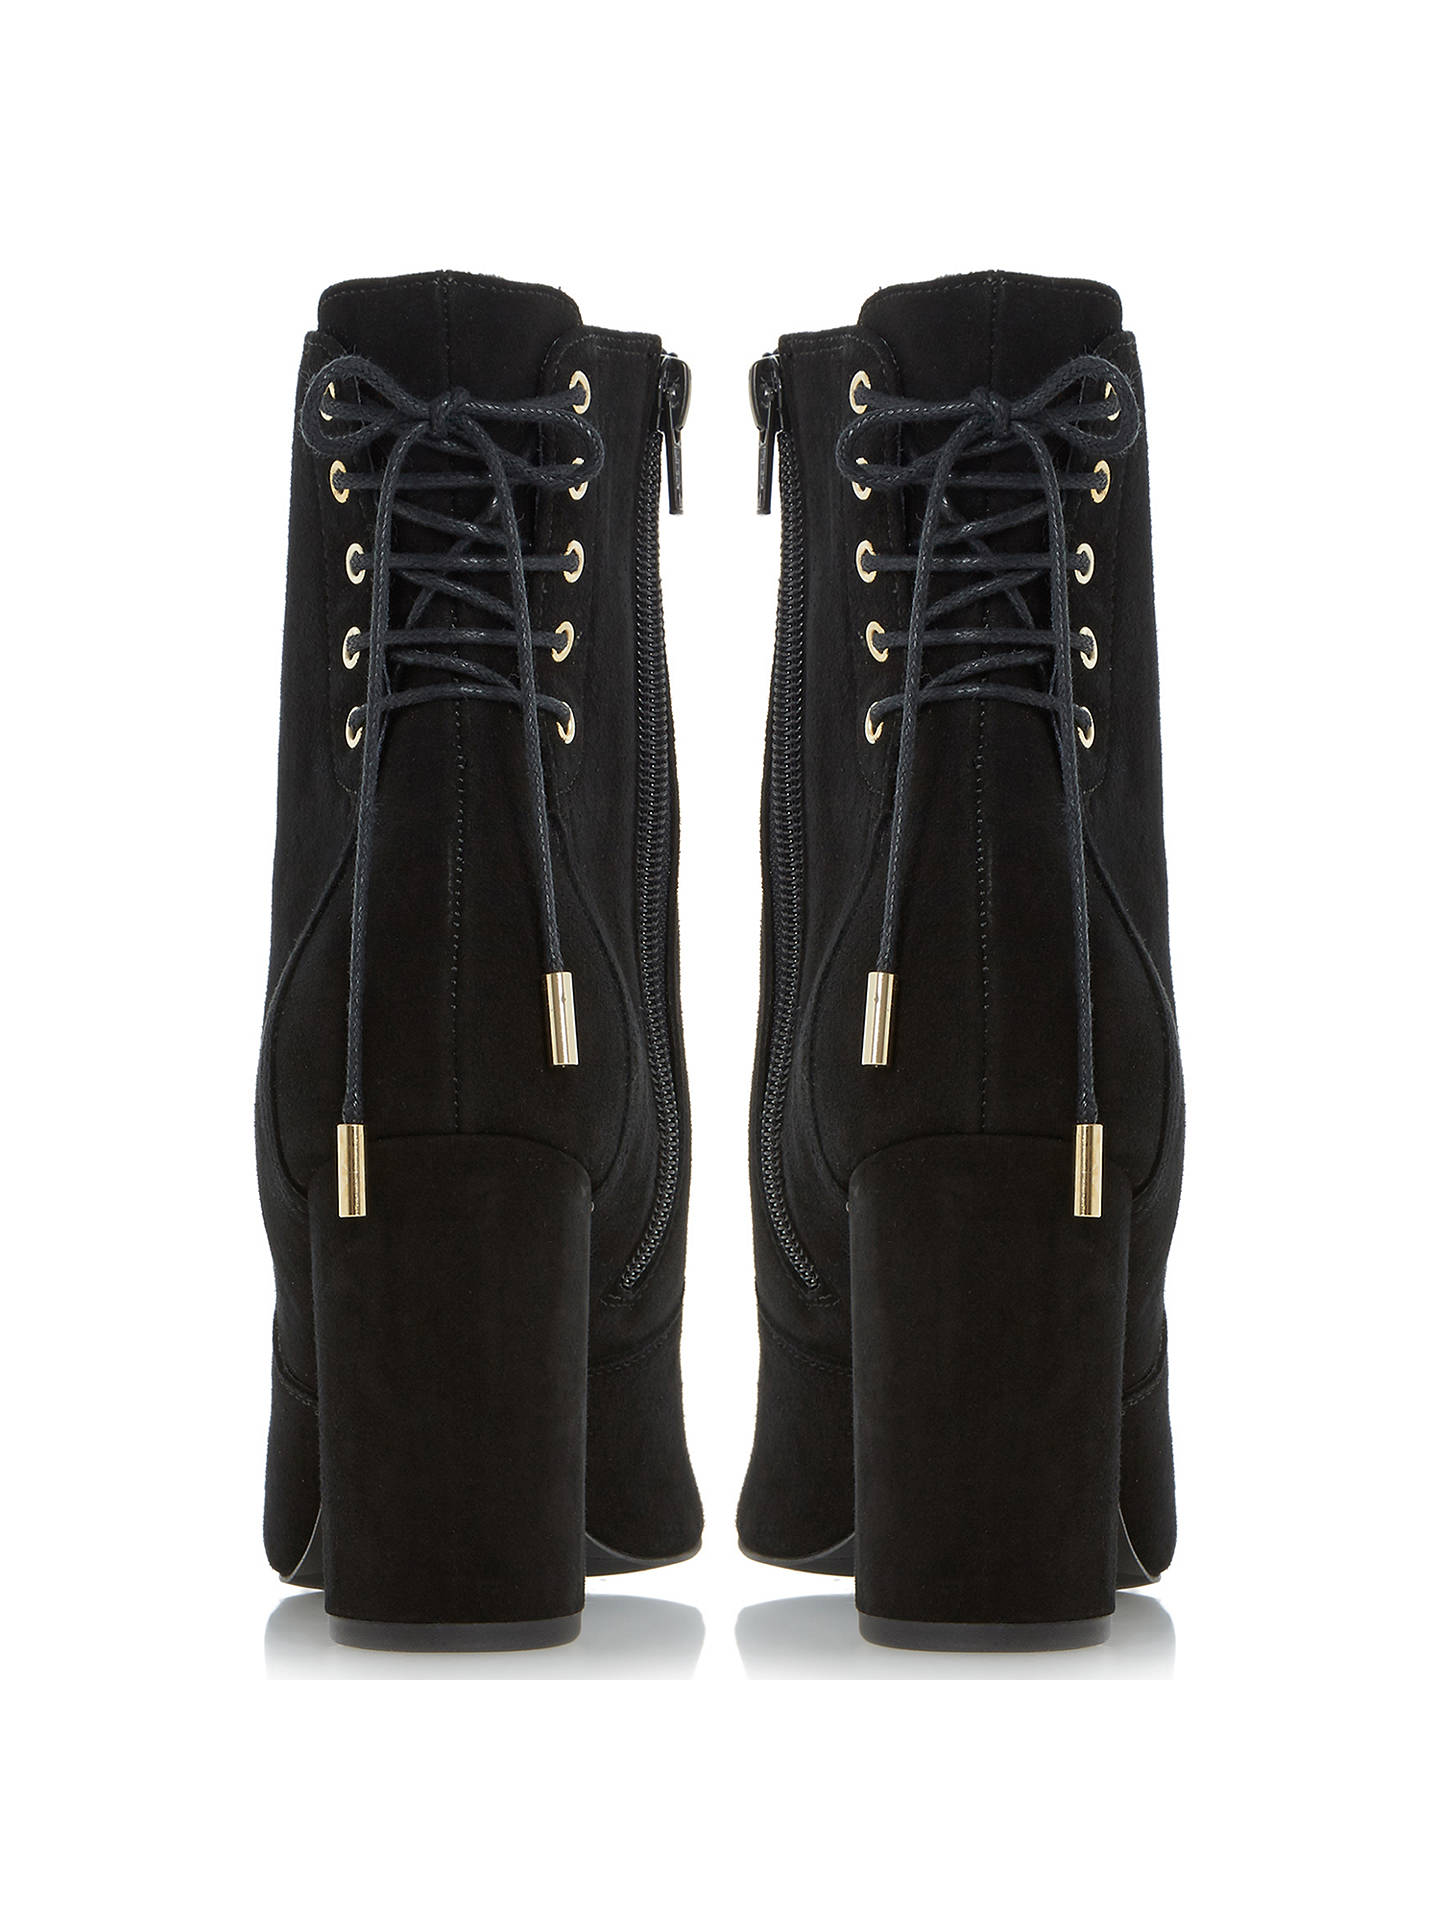 BuyDune Octagon Block Heeled Ankle Boots, Black, 5 Online at johnlewis.com